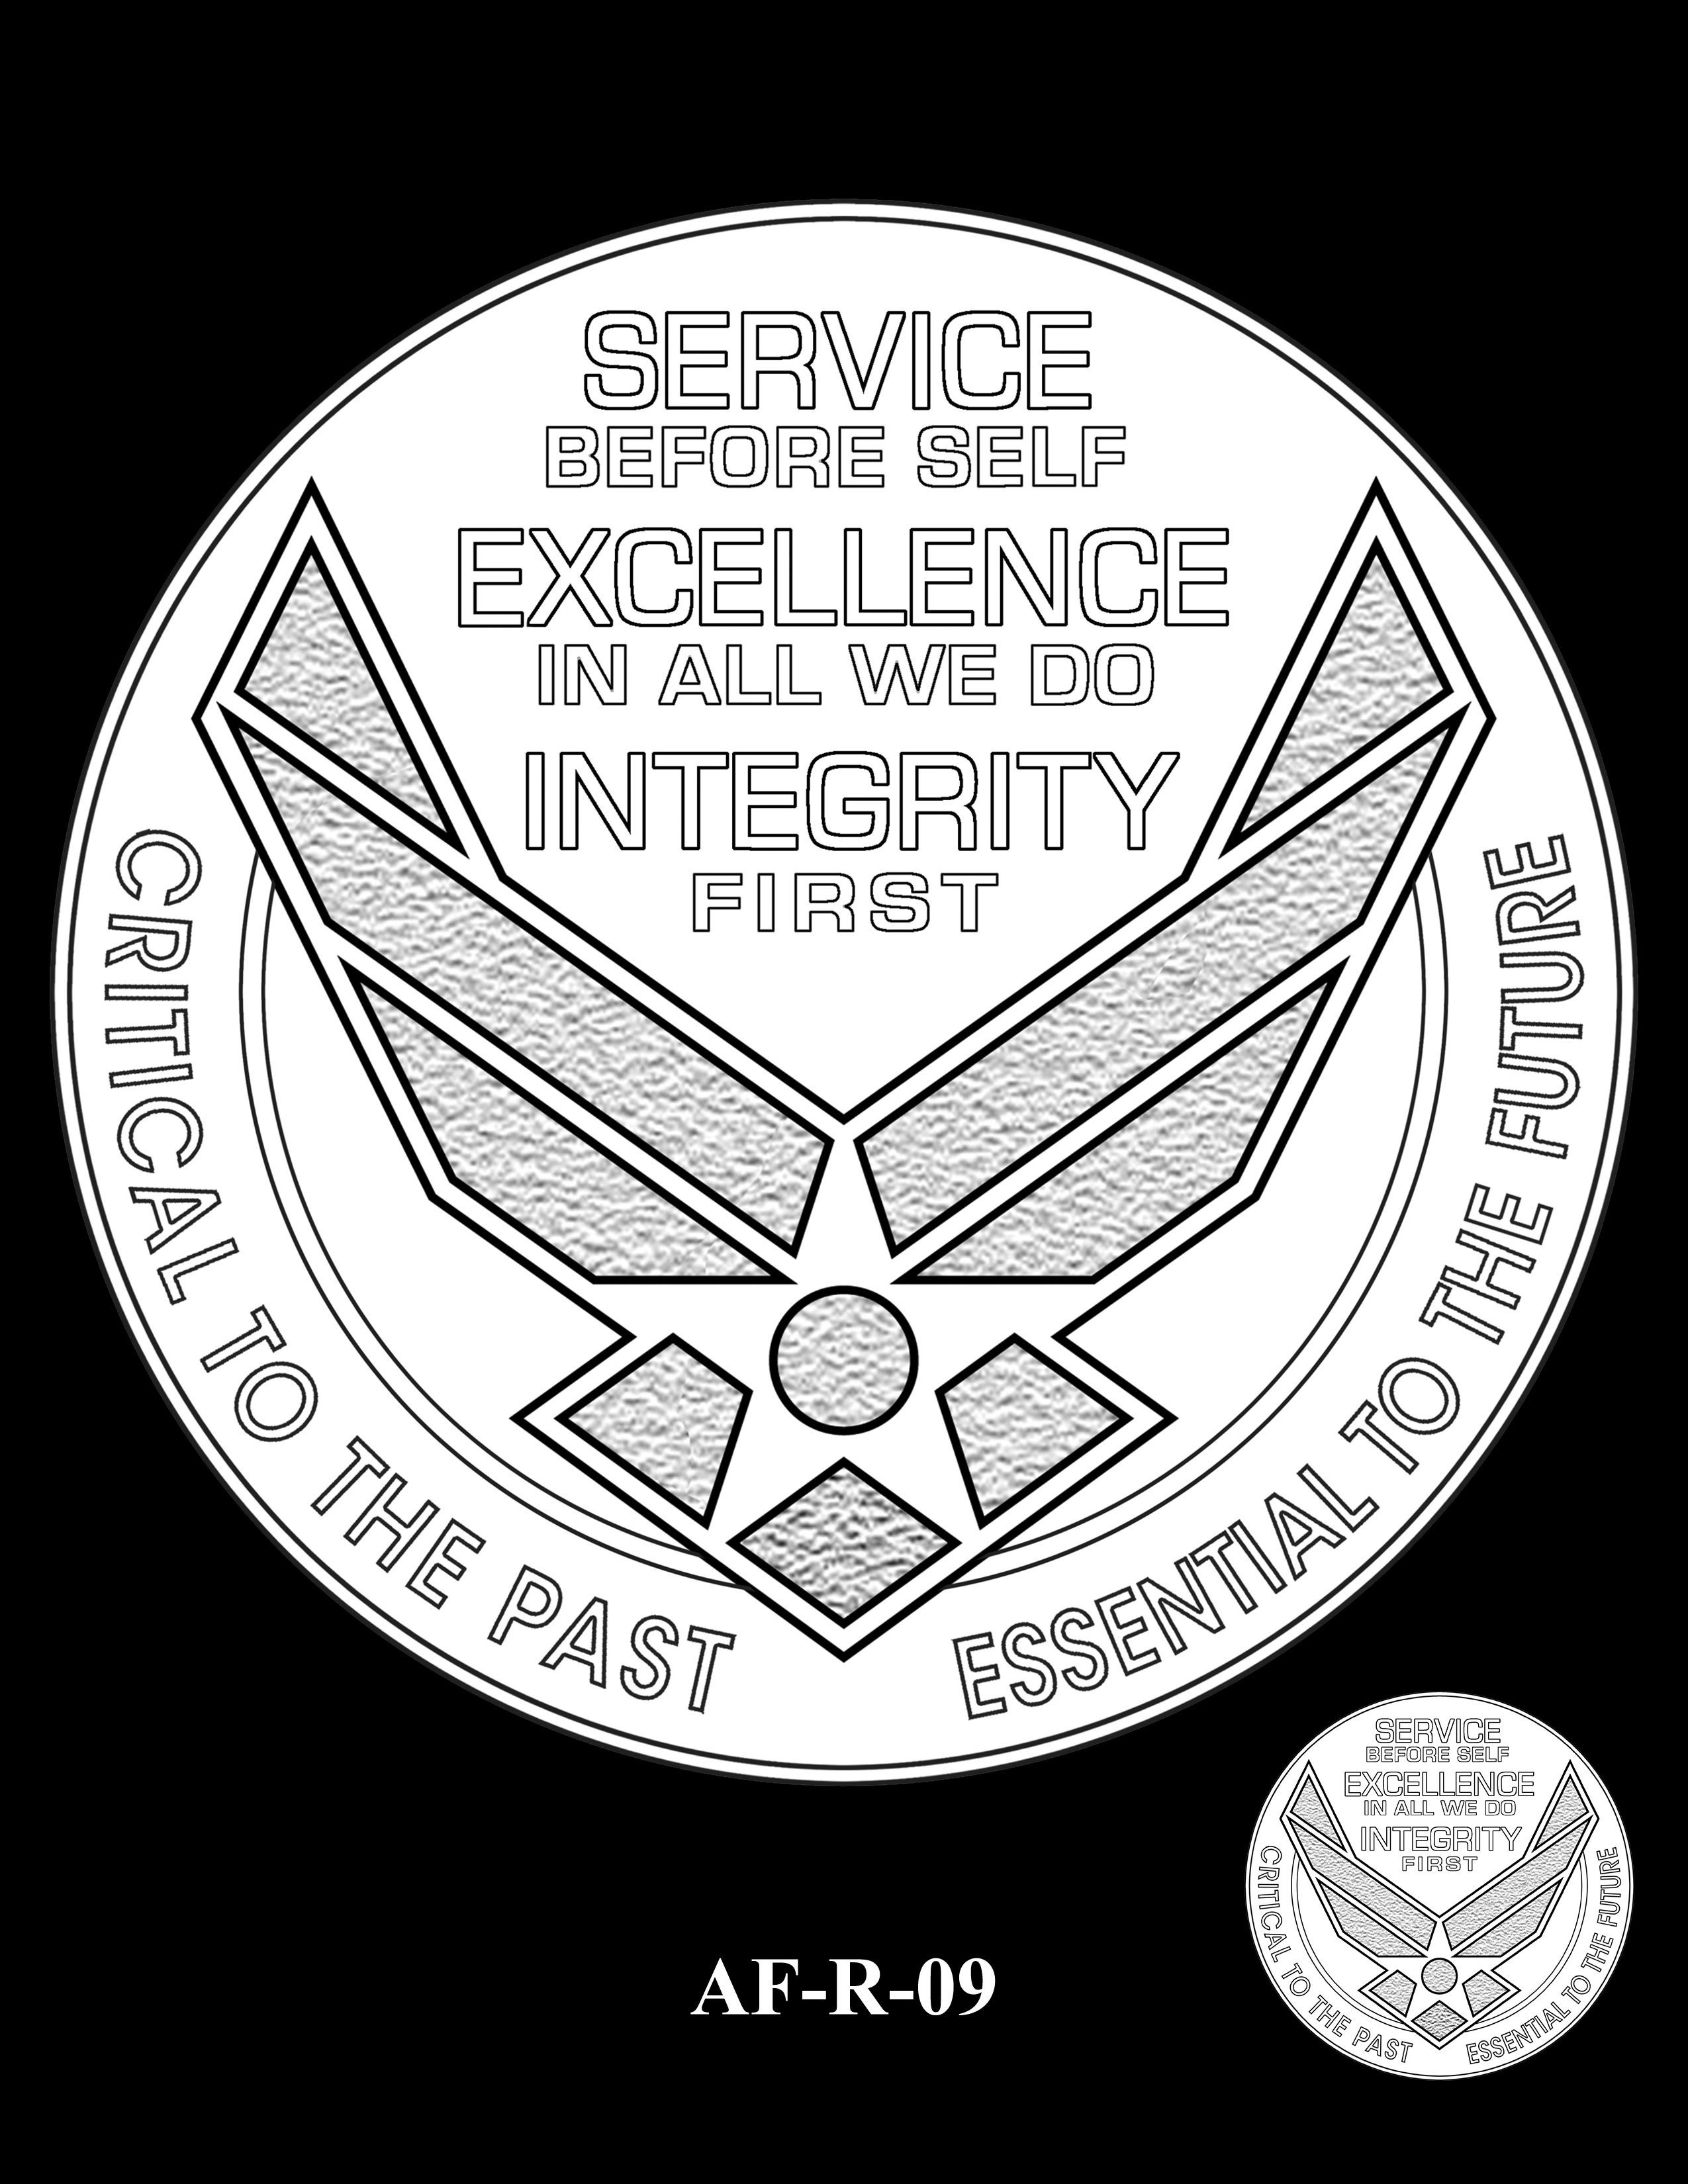 AF-R-09 -- Armed Forces Medal - Air Force